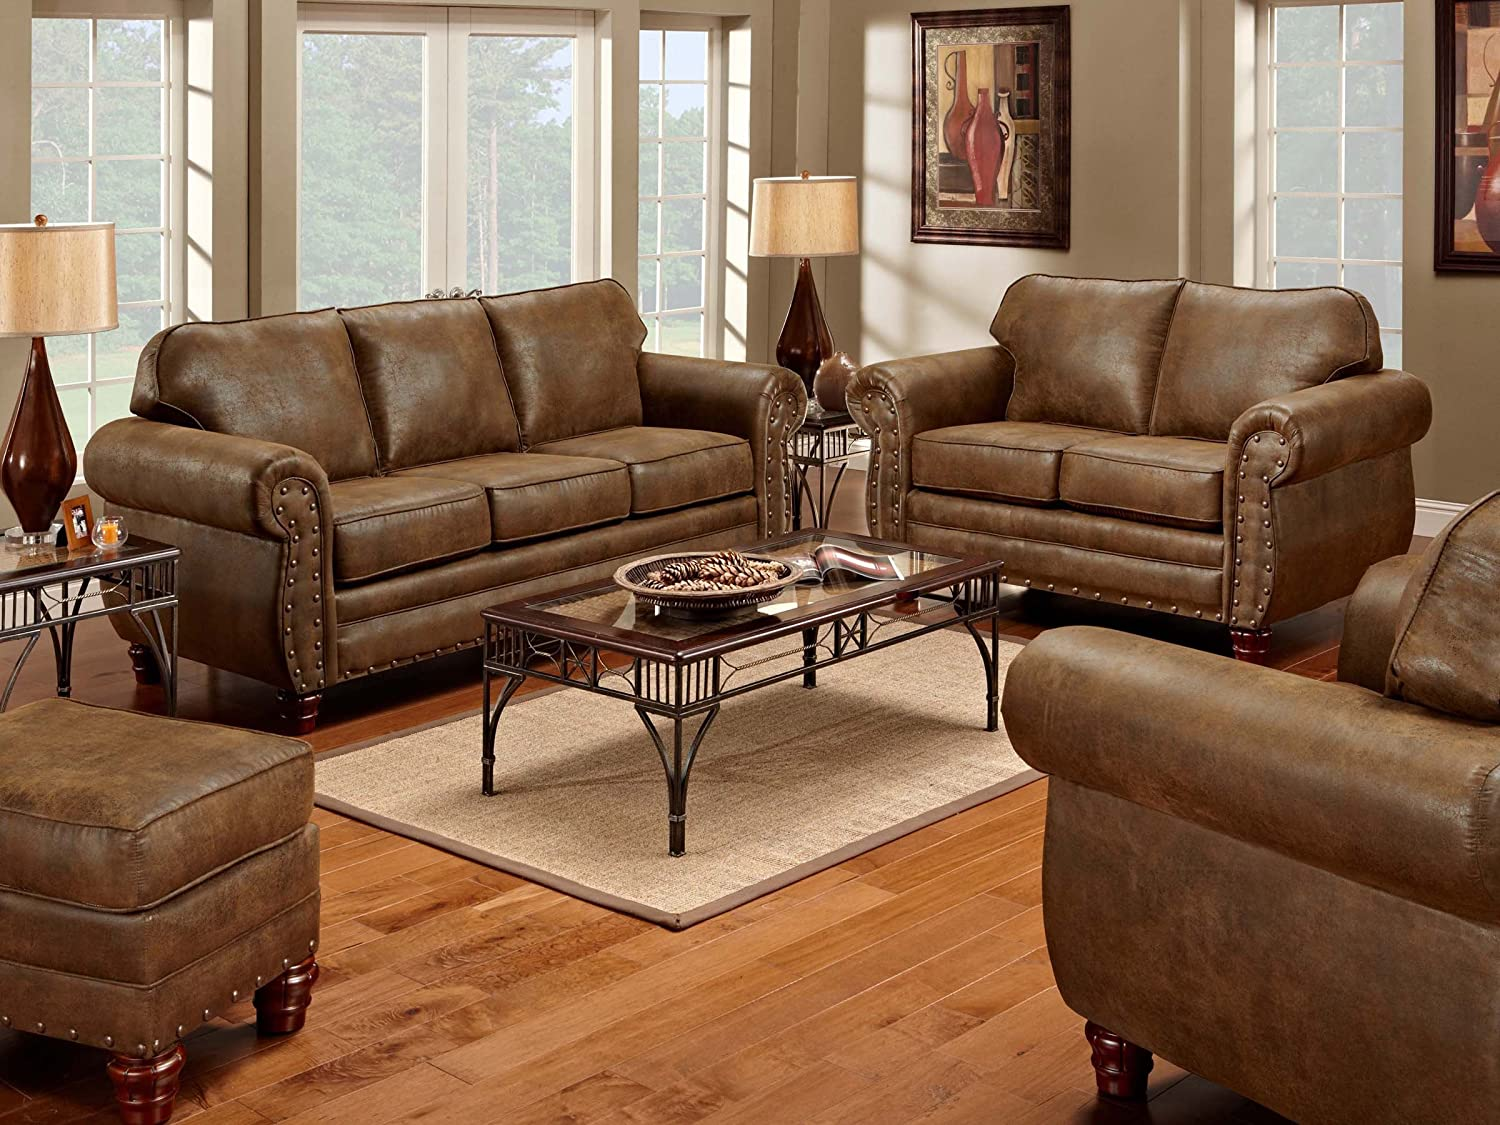 Amazon.com: American Furniture Classics 4 Piece Sedona Set With  Sofa/Loveseat/Chair/Ottoman: Kitchen U0026 Dining